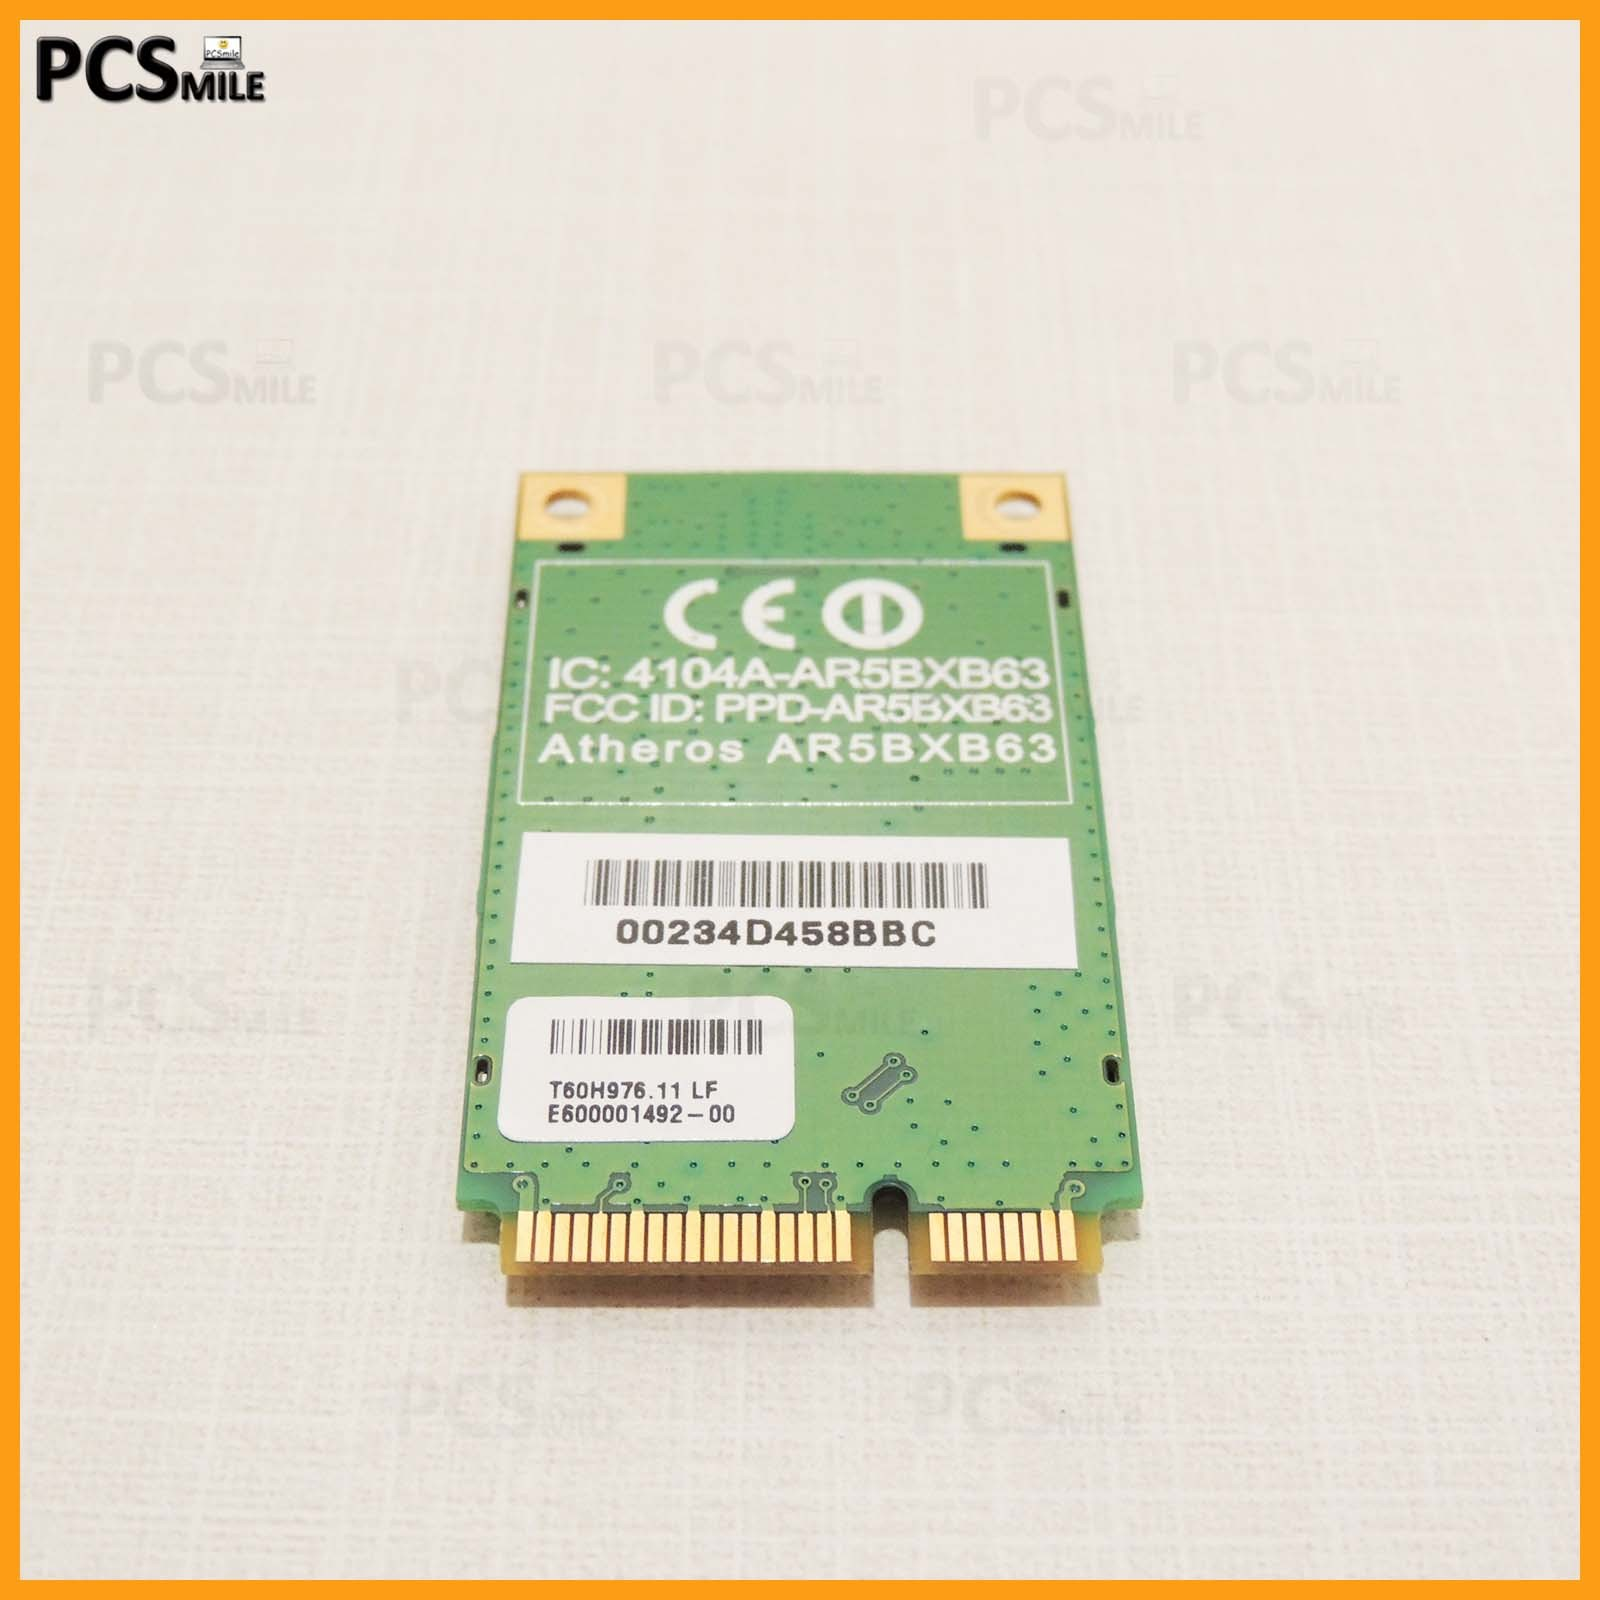 Scheda WiFi Atheros AR5BXB63 Wireless Acer Aspire One ZG5